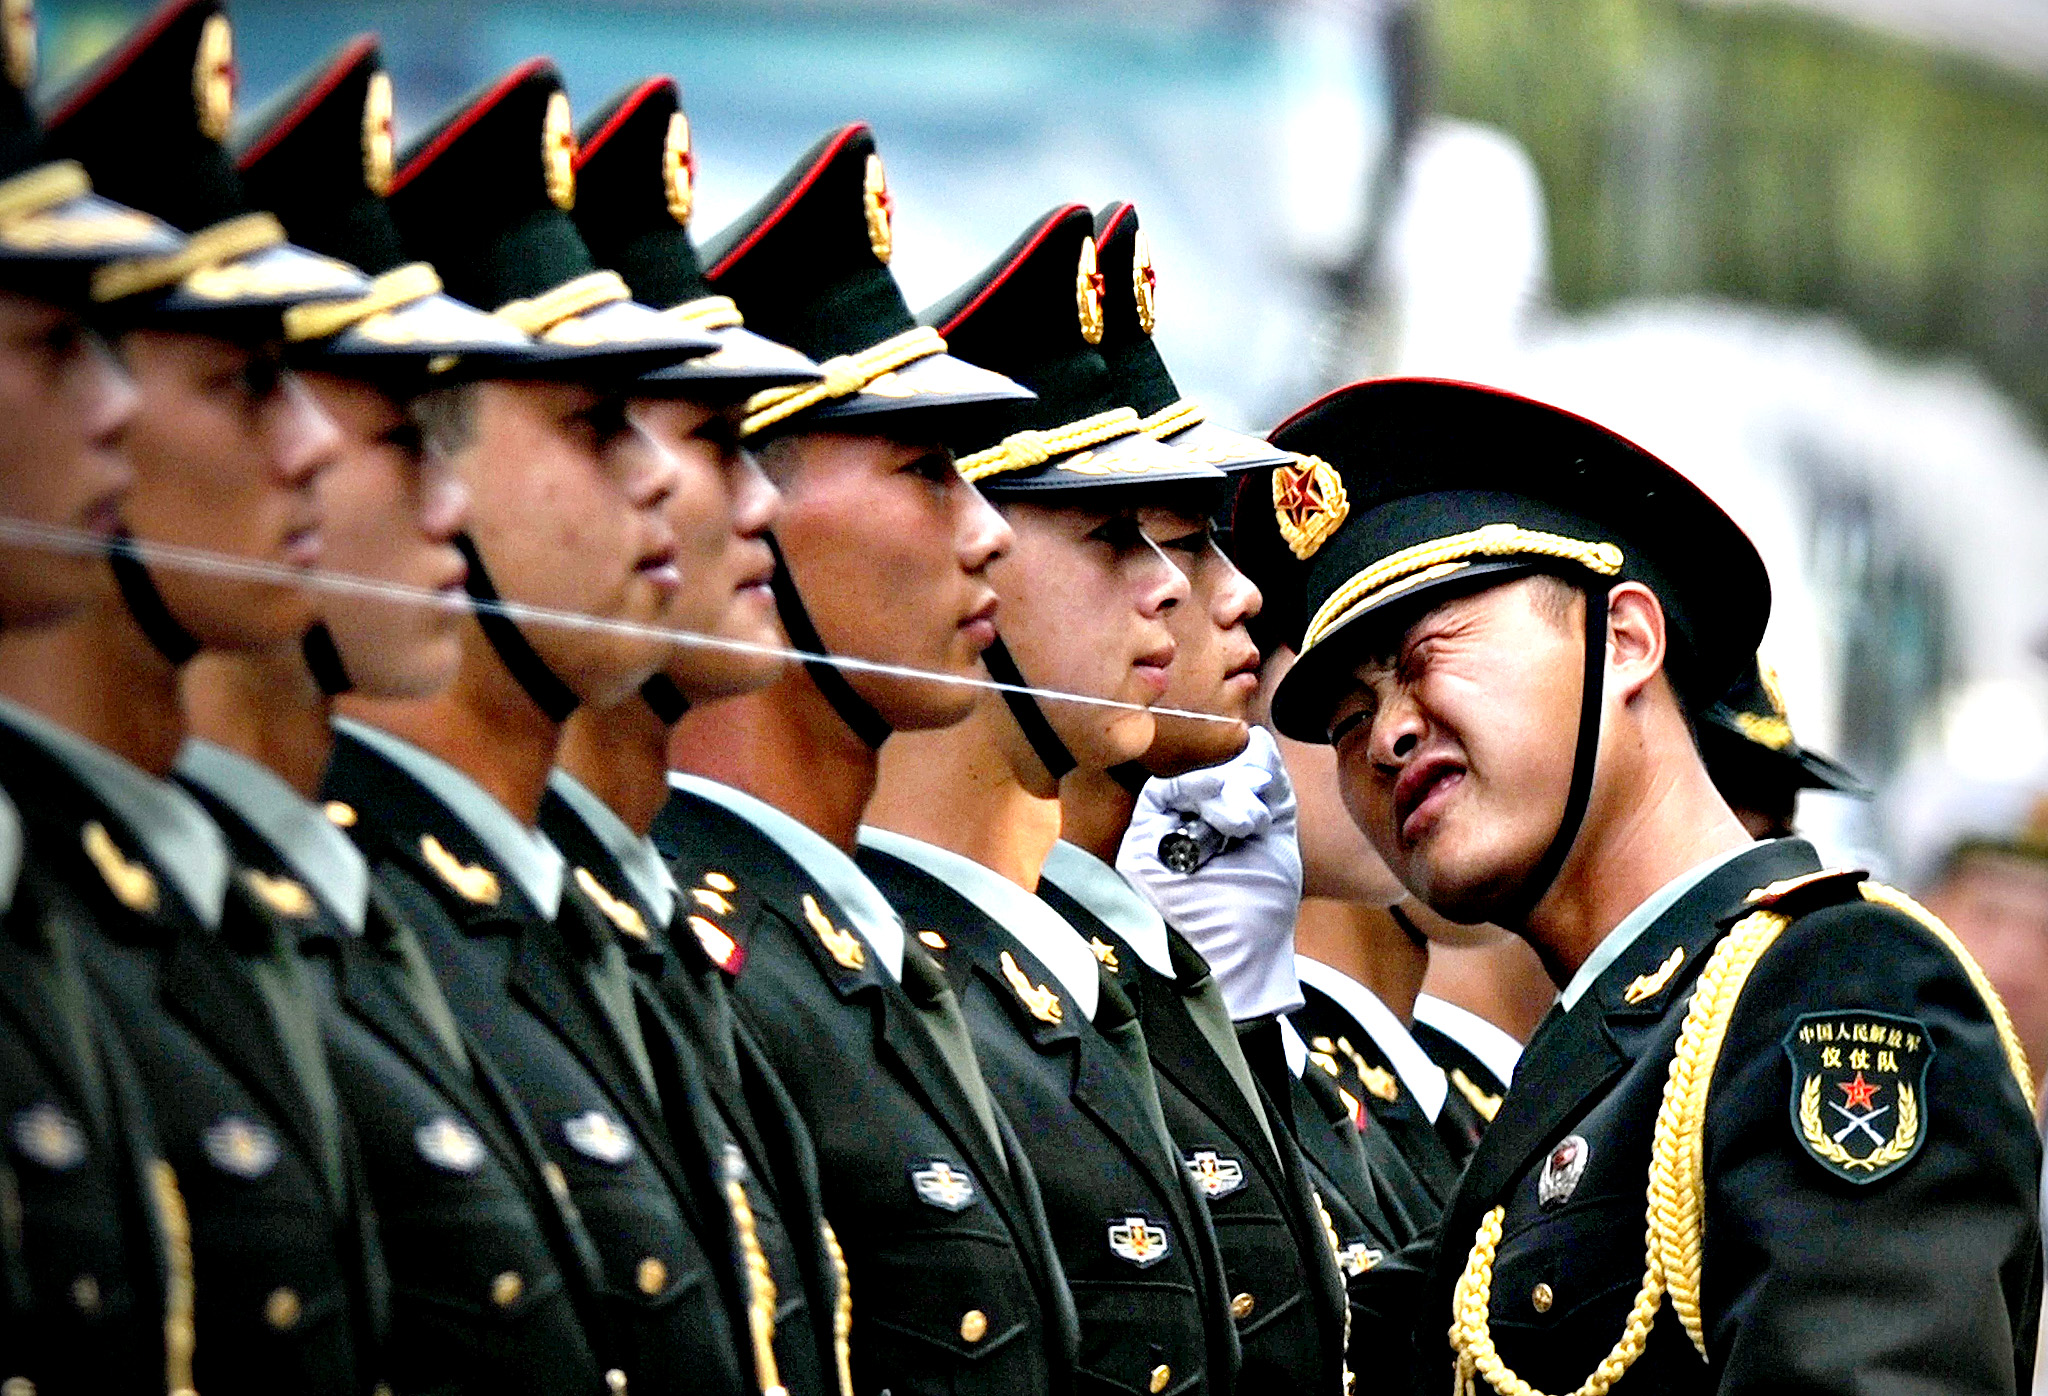 Chinese honour guards prepare for the arrival of Myanmar President U Thein Sein and Chinese President Xi Jinping during a welcome ceremony outside the Great Hall of the People in Beijing on June 27,2014. U Thein Sein is on a visit to China from June 27 to 30.